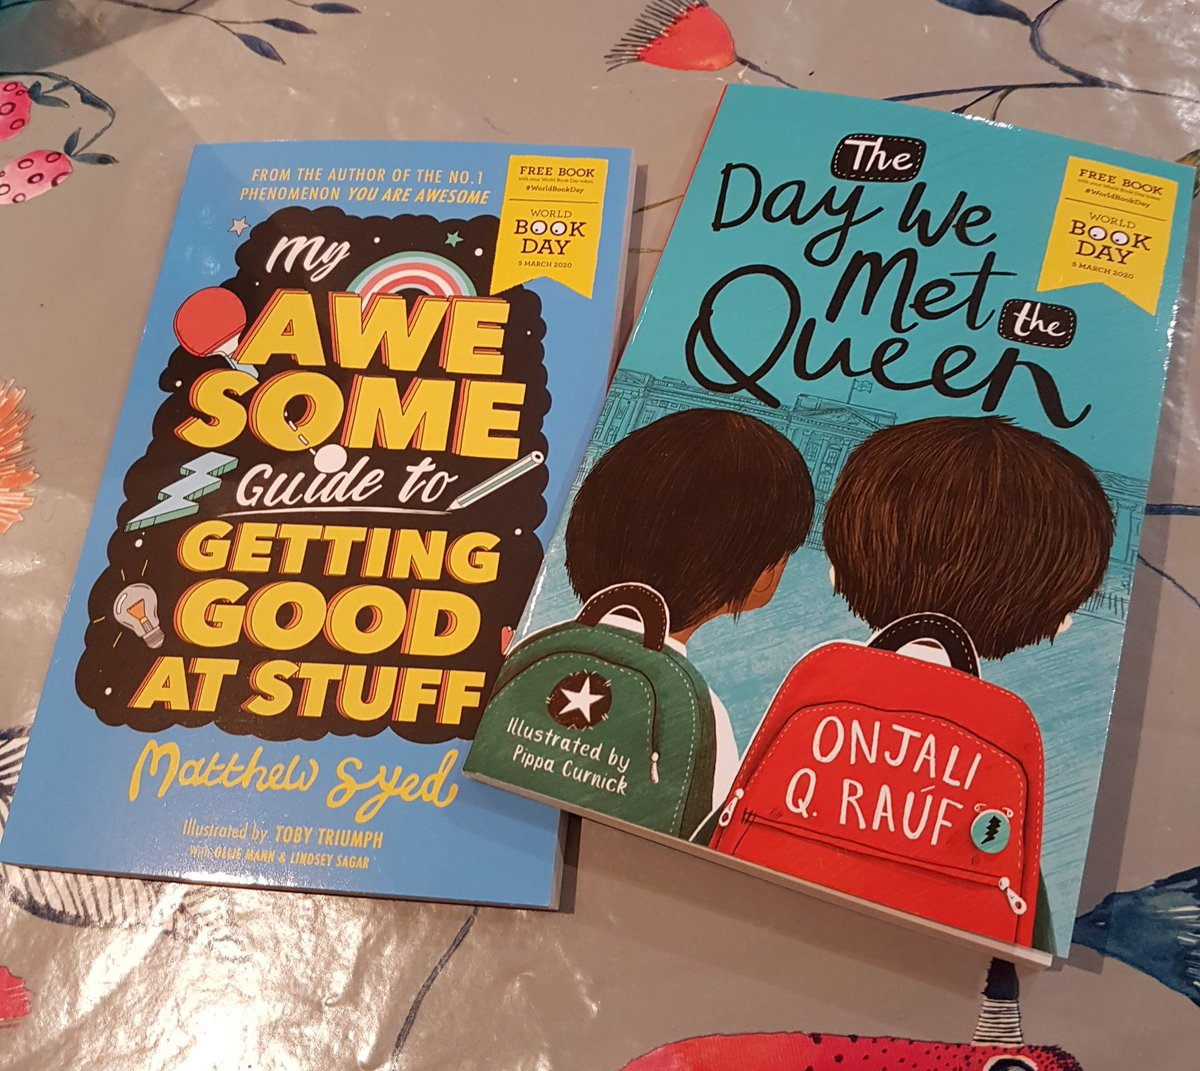 Latest additions to my children's books collection for @WorldBookDayUK